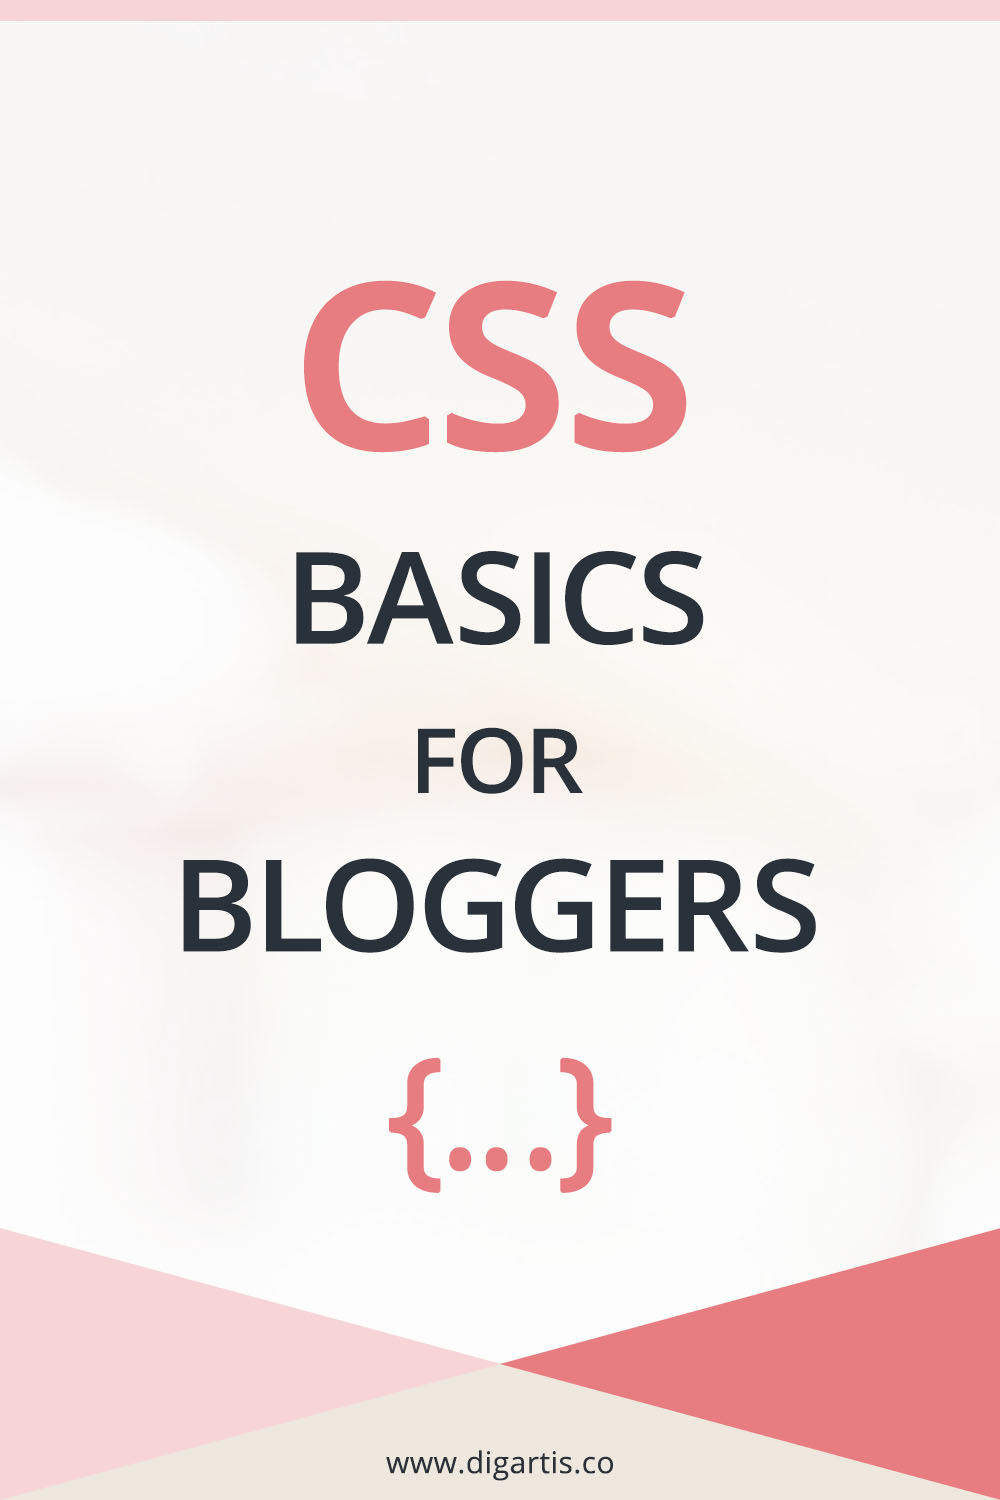 CSS basics for bloggers